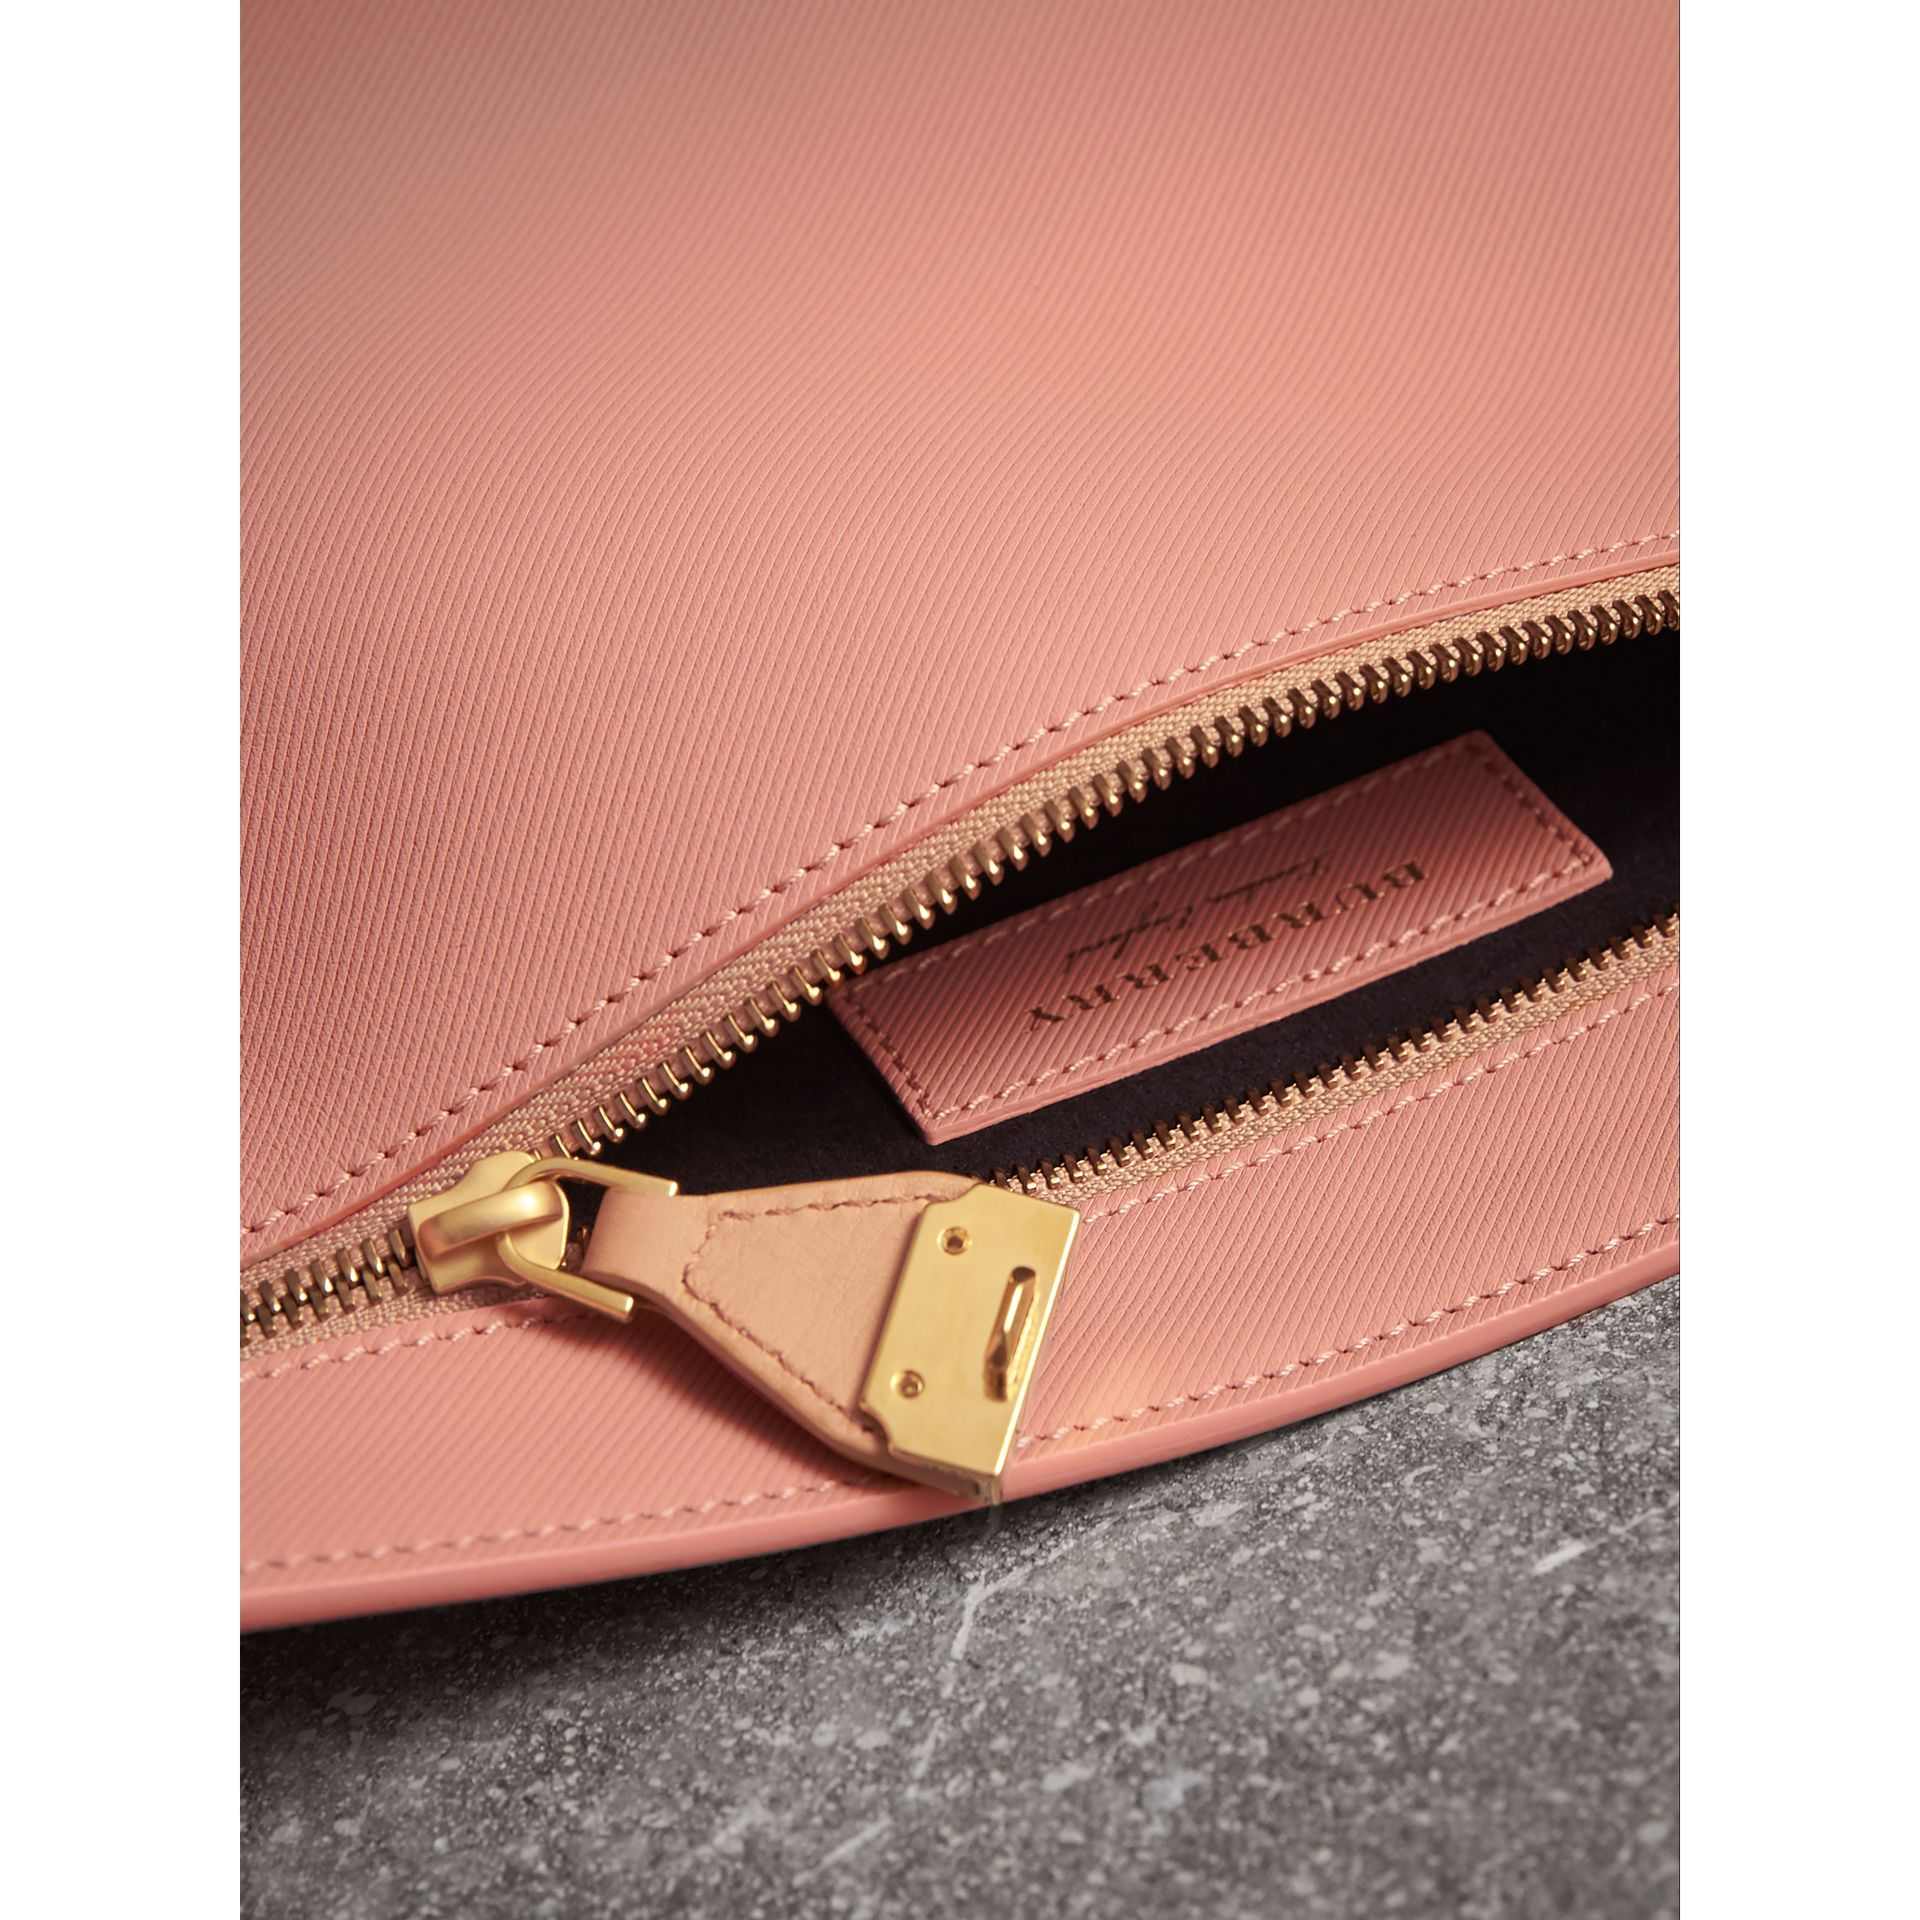 Two-tone Trench Leather Wristlet Pouch in Ash Rose/pale Clementine - Women | Burberry - gallery image 4